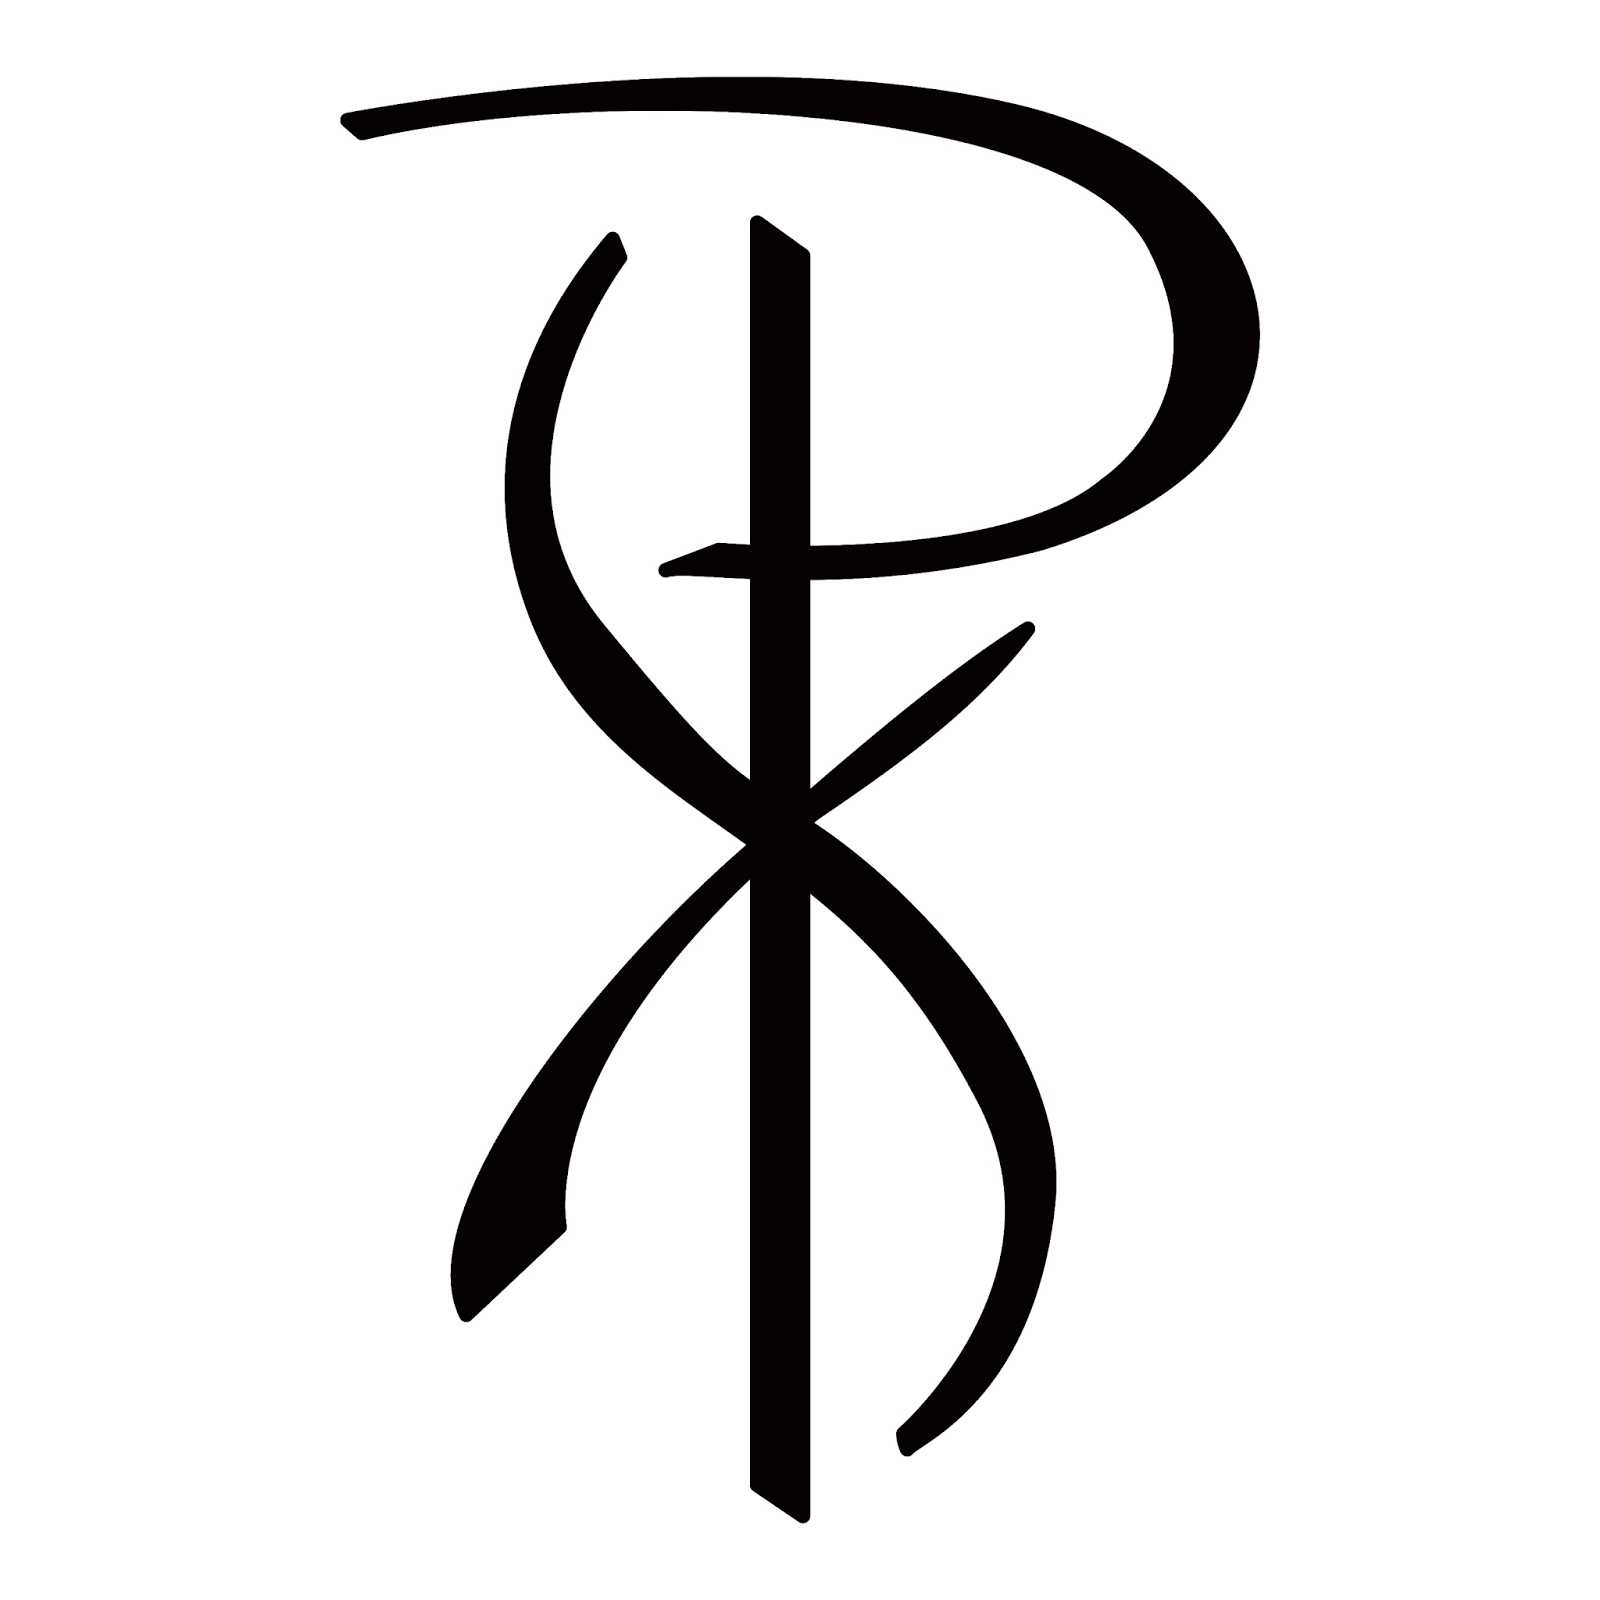 Greek symbol for christ choice image symbol and sign ideas an interview with zeke pipher about the wild man and wild zeke that symbol is the buycottarizona